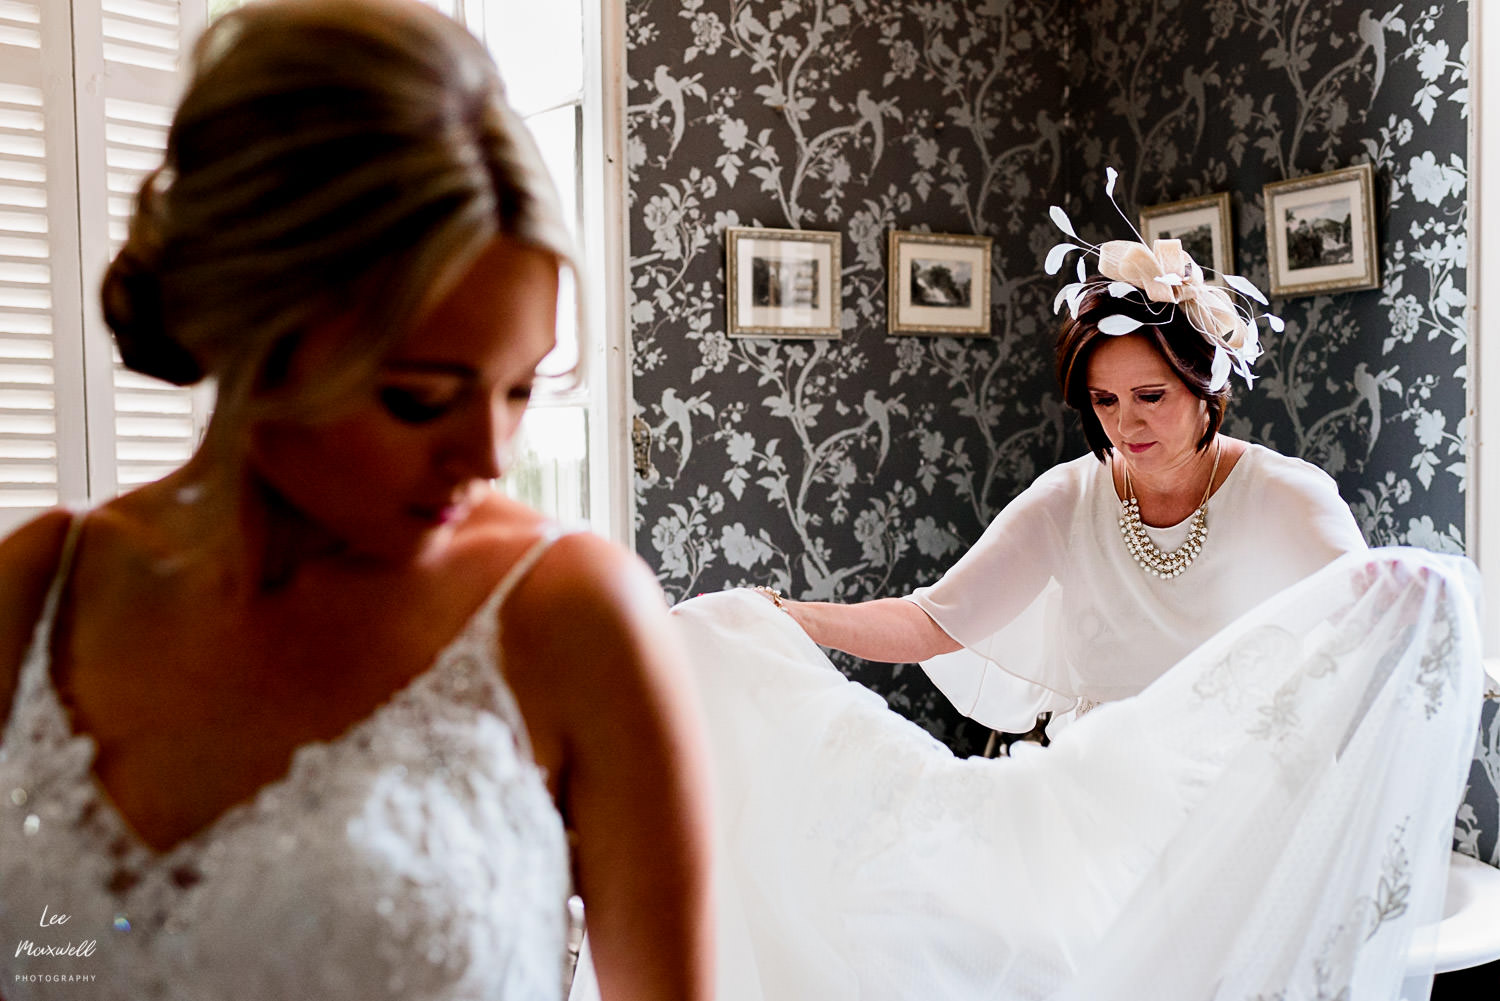 Mum helping bride with dress